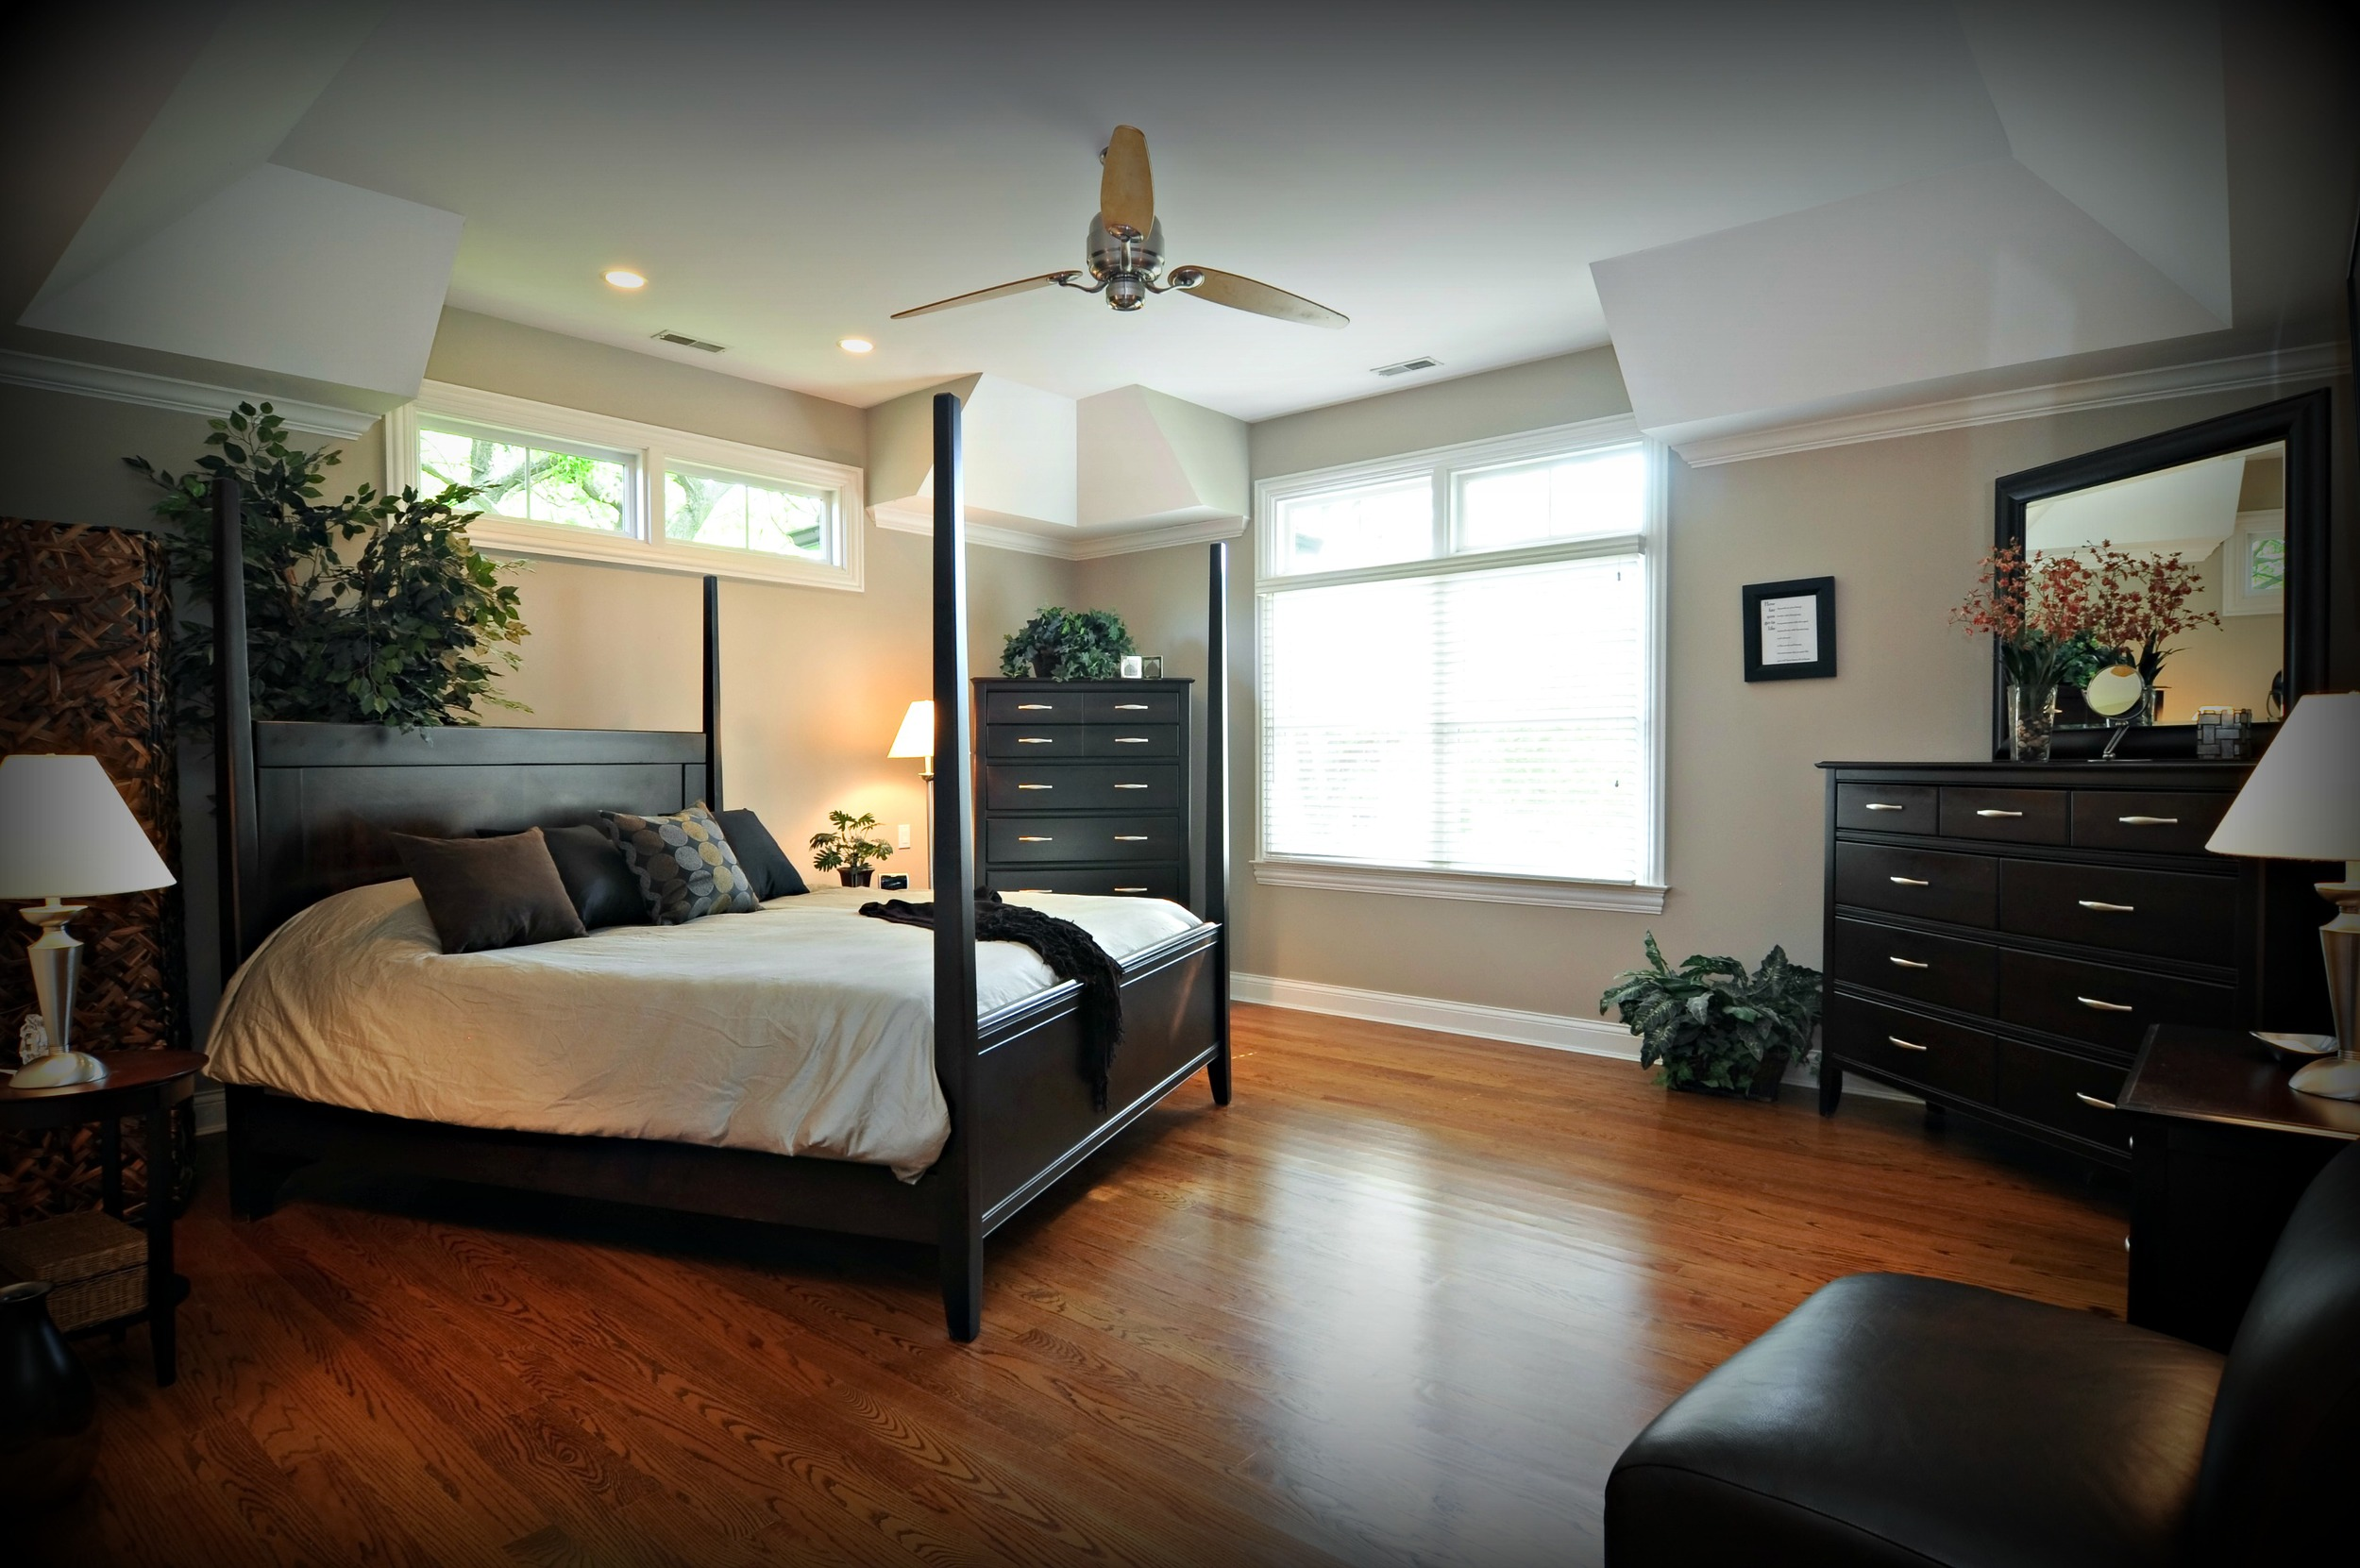 Selling Or Staying, We Can Help Transform Your Space.